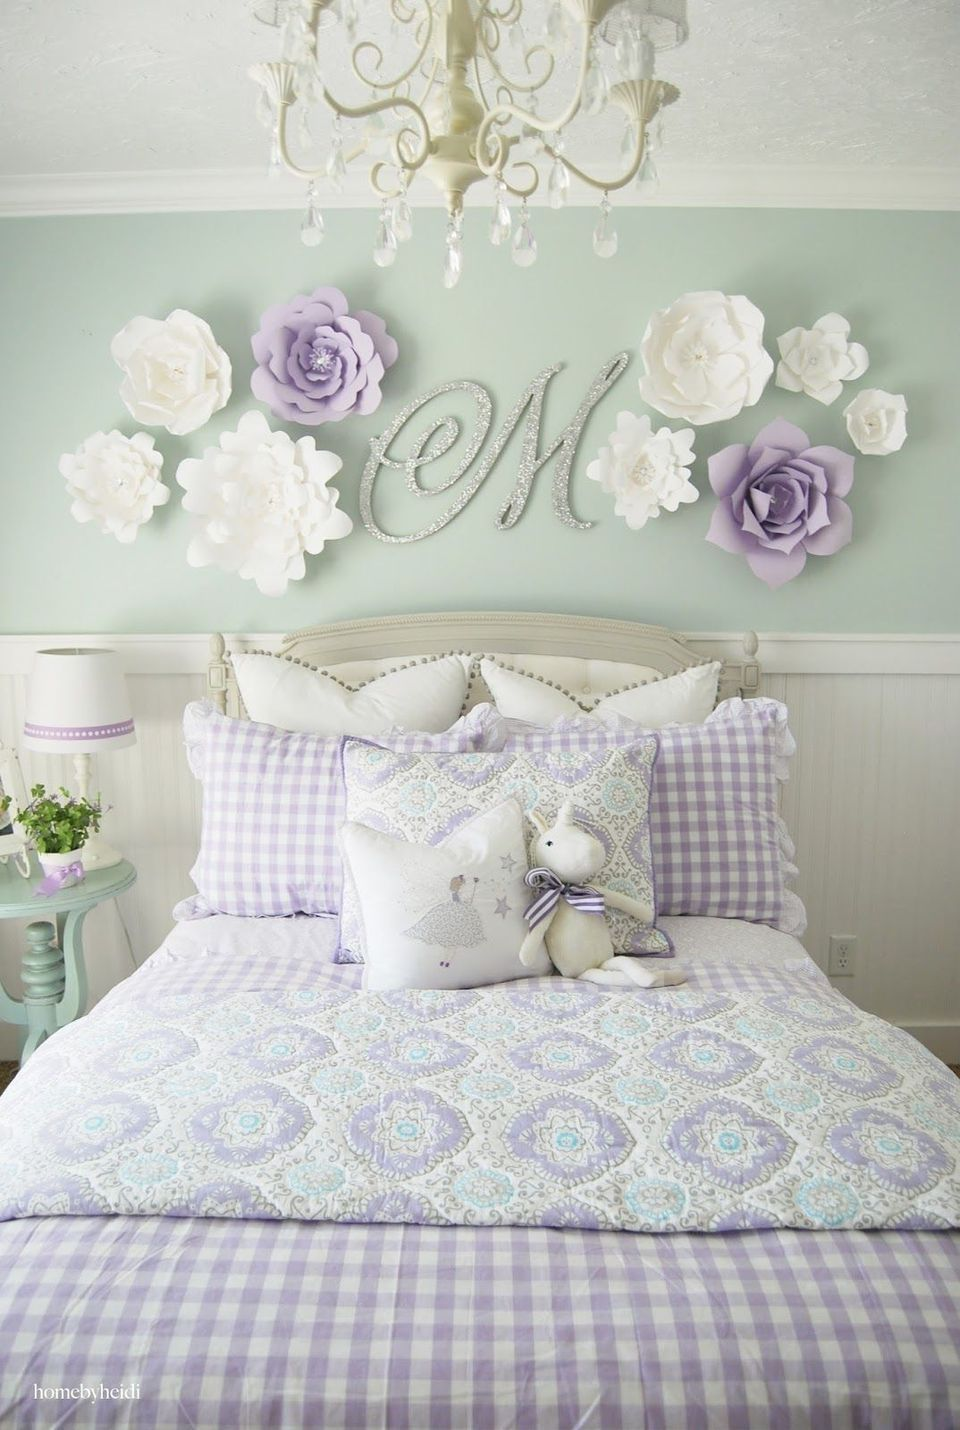 24 Wall Decor Ideas For Girls Rooms Girls Room Decor Pink Princess Room Toddler Bedroom Girl